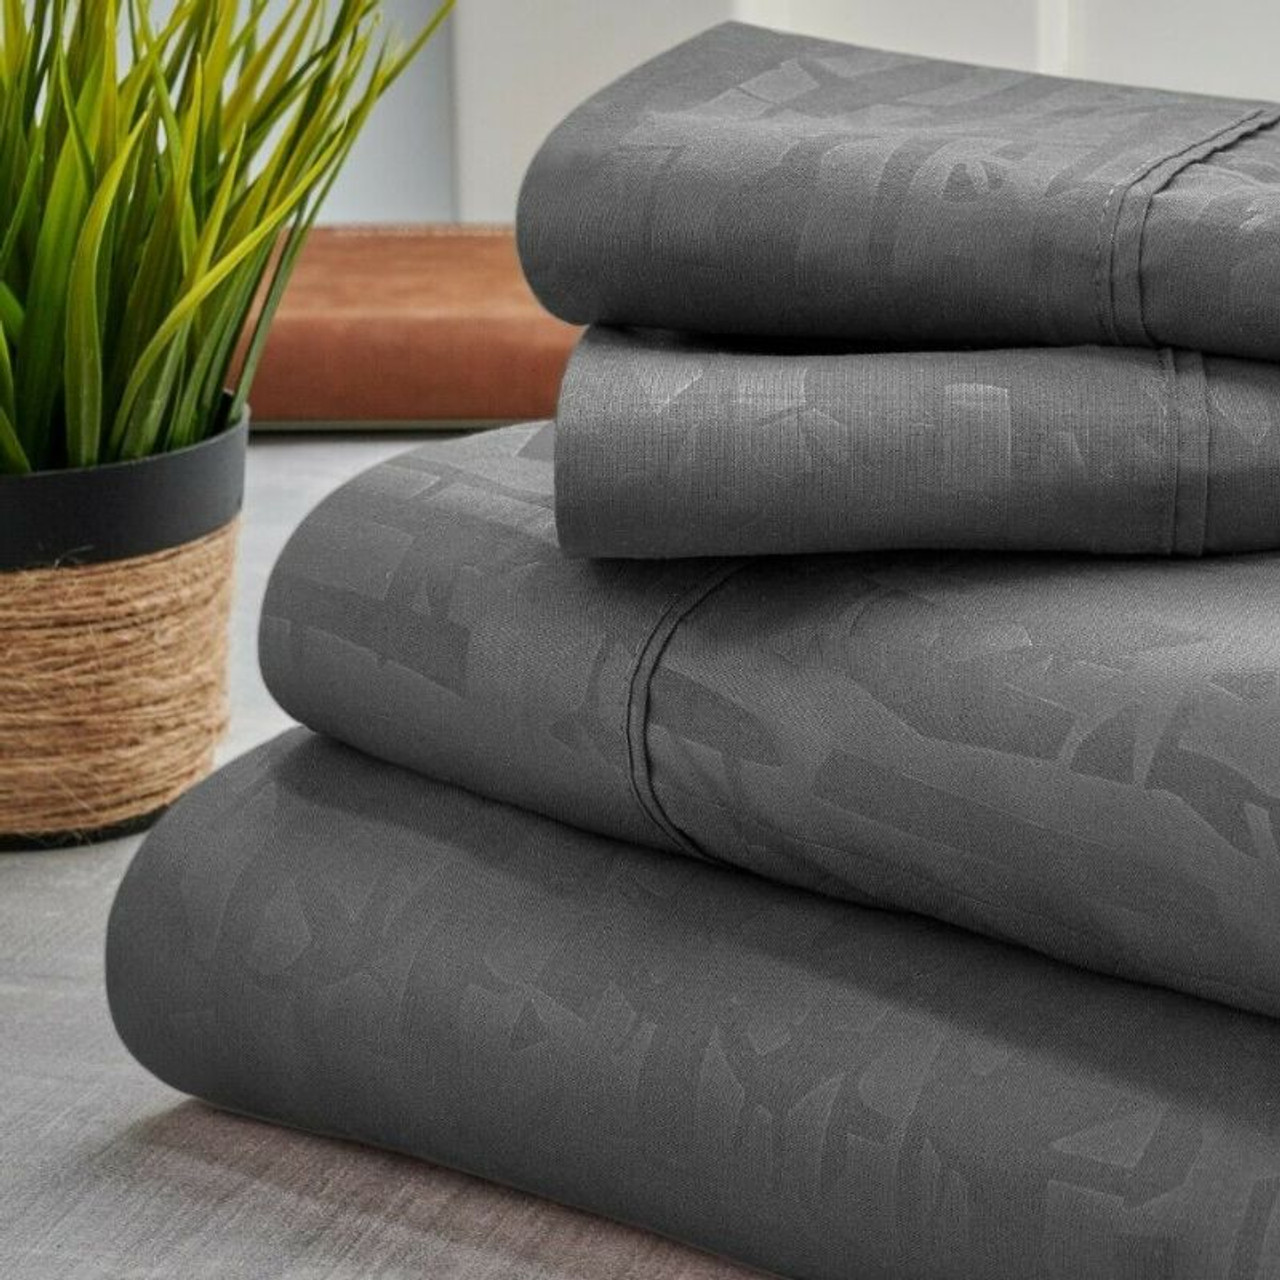 Bamboo 1800 Count Embossed Design 4-Piece Sheet Set